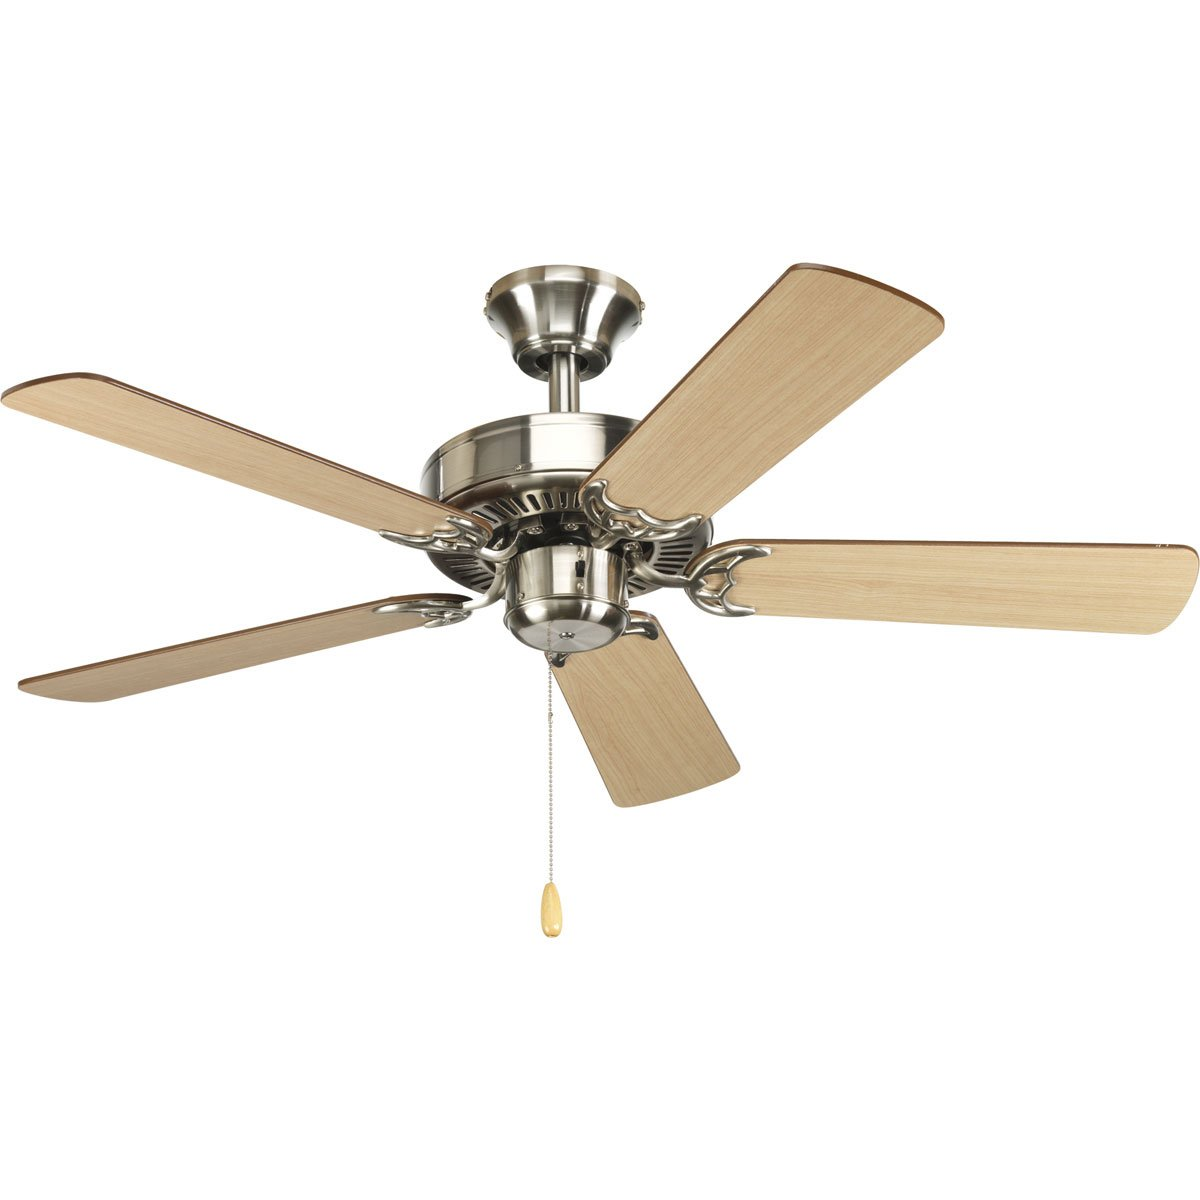 Progress Lighting P2500-09 42-Inch Fan with 5 Blades with Reversible Cherry/Natural Cherry Blades, Brushed Nickel by Progress Lighting (Image #1)